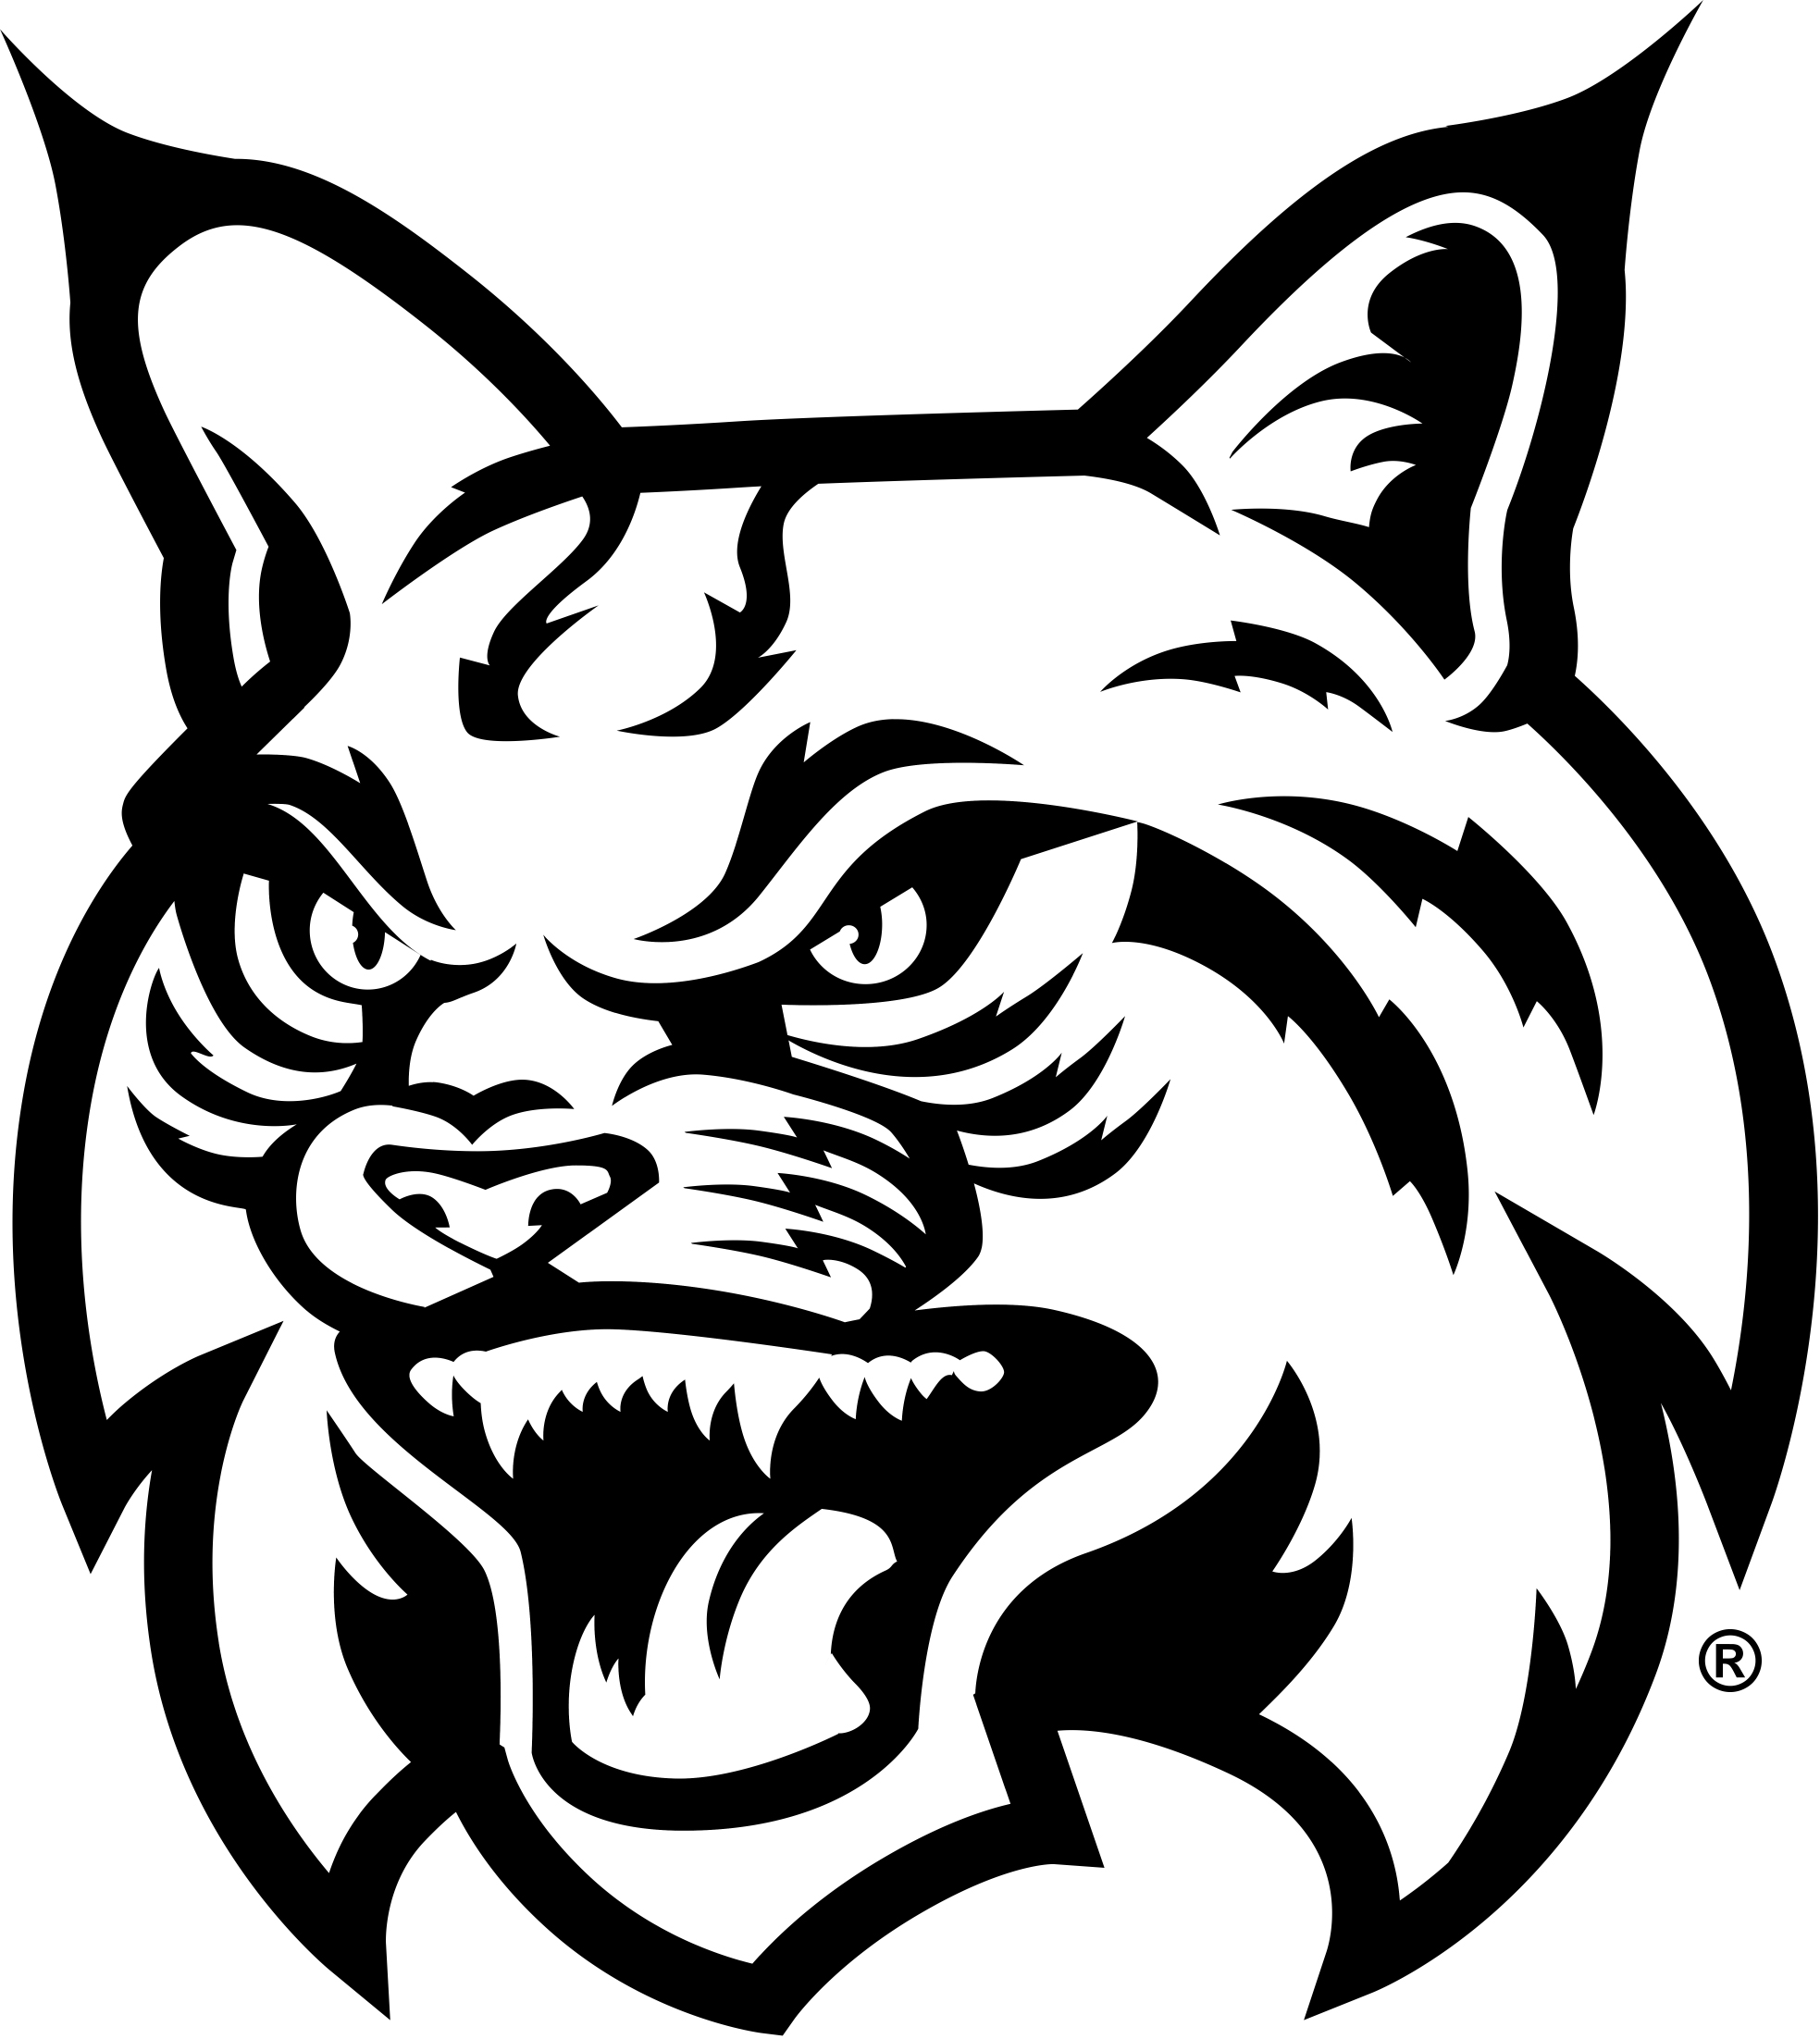 Bobcats drawing at getdrawings. Bobcat clipart black and white